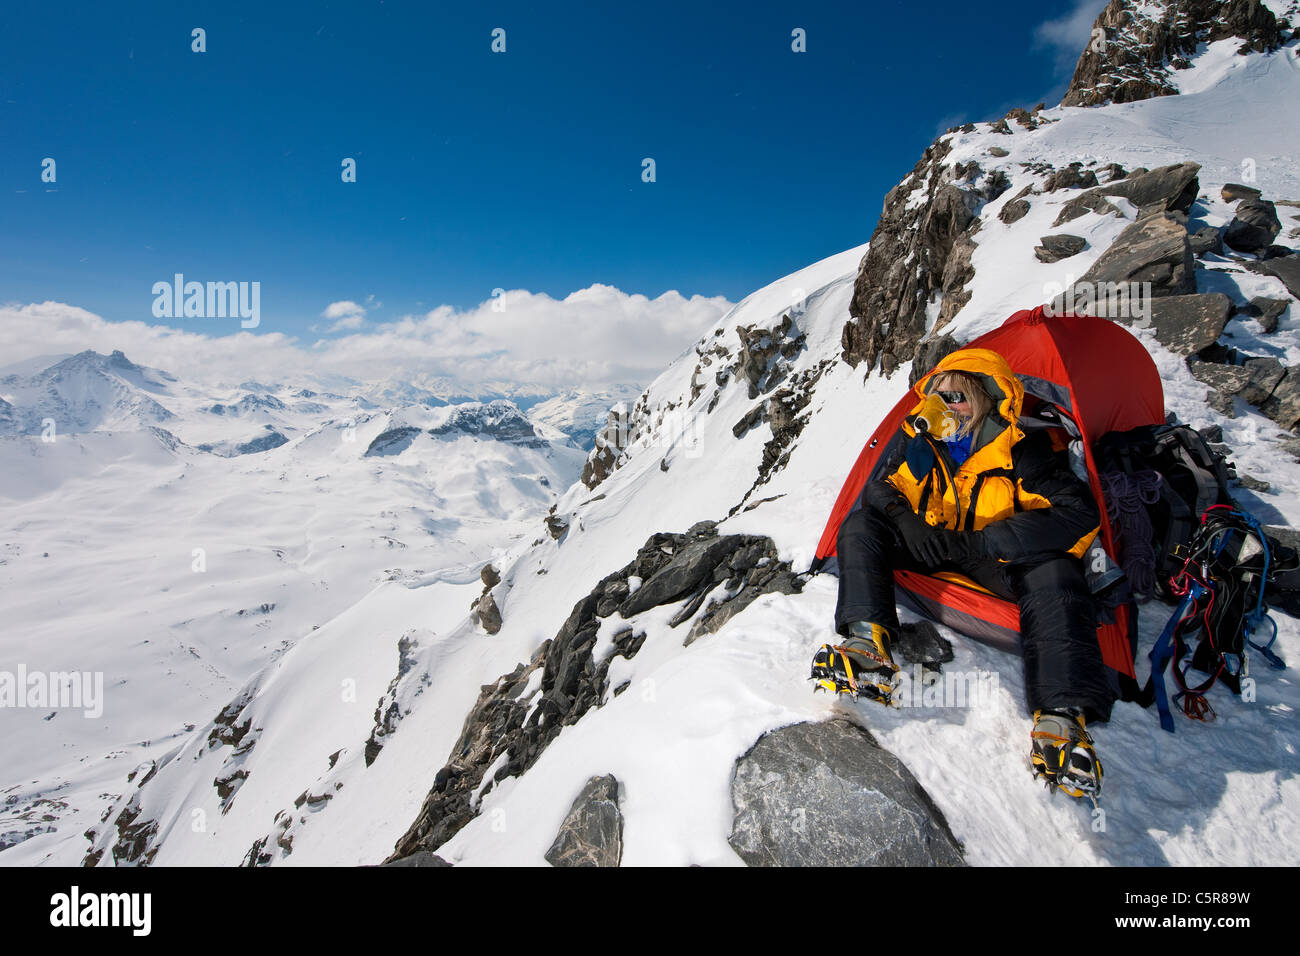 A mountaineer sitting in tent with oxygen mask looks out over high snowy mountains. - Stock Image